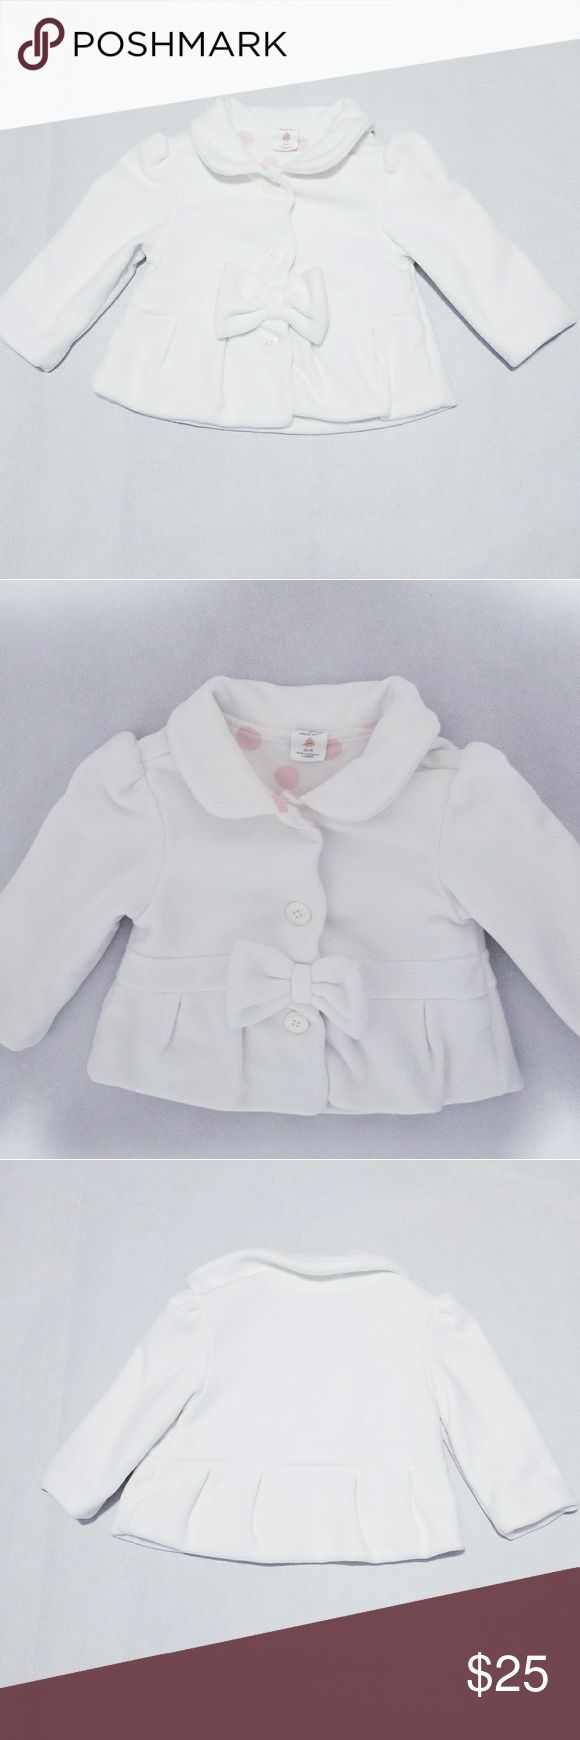 "Starting Out Baby Girl Coat Jacket Blazer 12 M Starting Out Baby Girl Coat sweater jacket   Longsleeves  Color ivory / white   Size 12 months  Approx measurements  Chest 22""  length 12""  Sleeve length 11"" Shoulder to shoulder 10""  In very good condition   Smoke free and pet free home Starting Out Jackets & Coats"